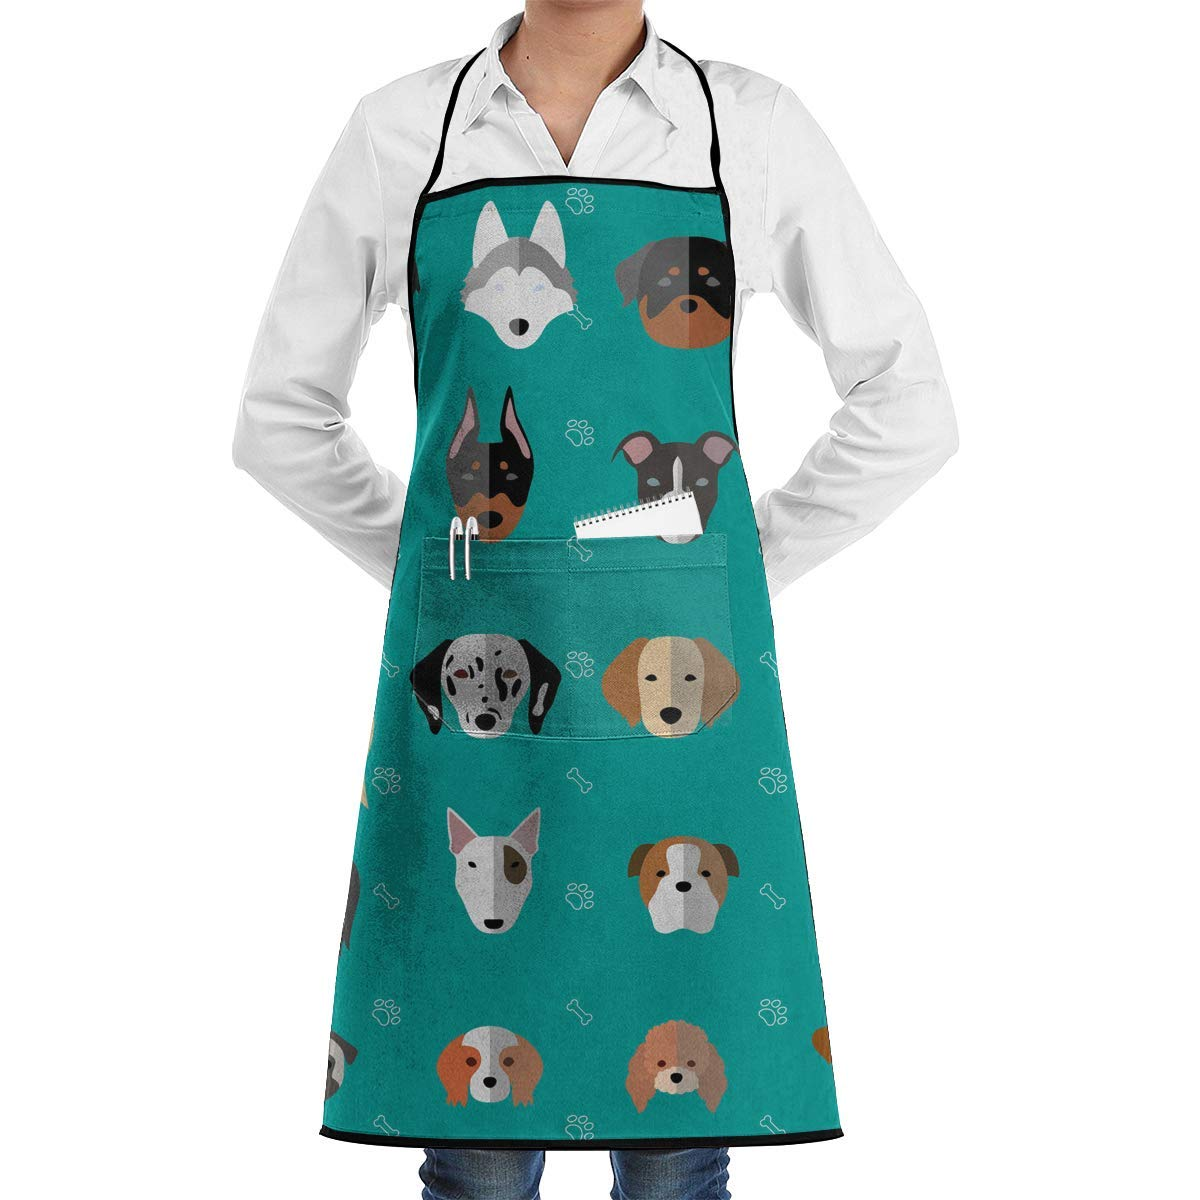 QIAOJIE Dog Heads Cute Bib Apron for Women Men - Waterproof Chef Apron with Front Pocket for Kitchen Cooking Craft Baking